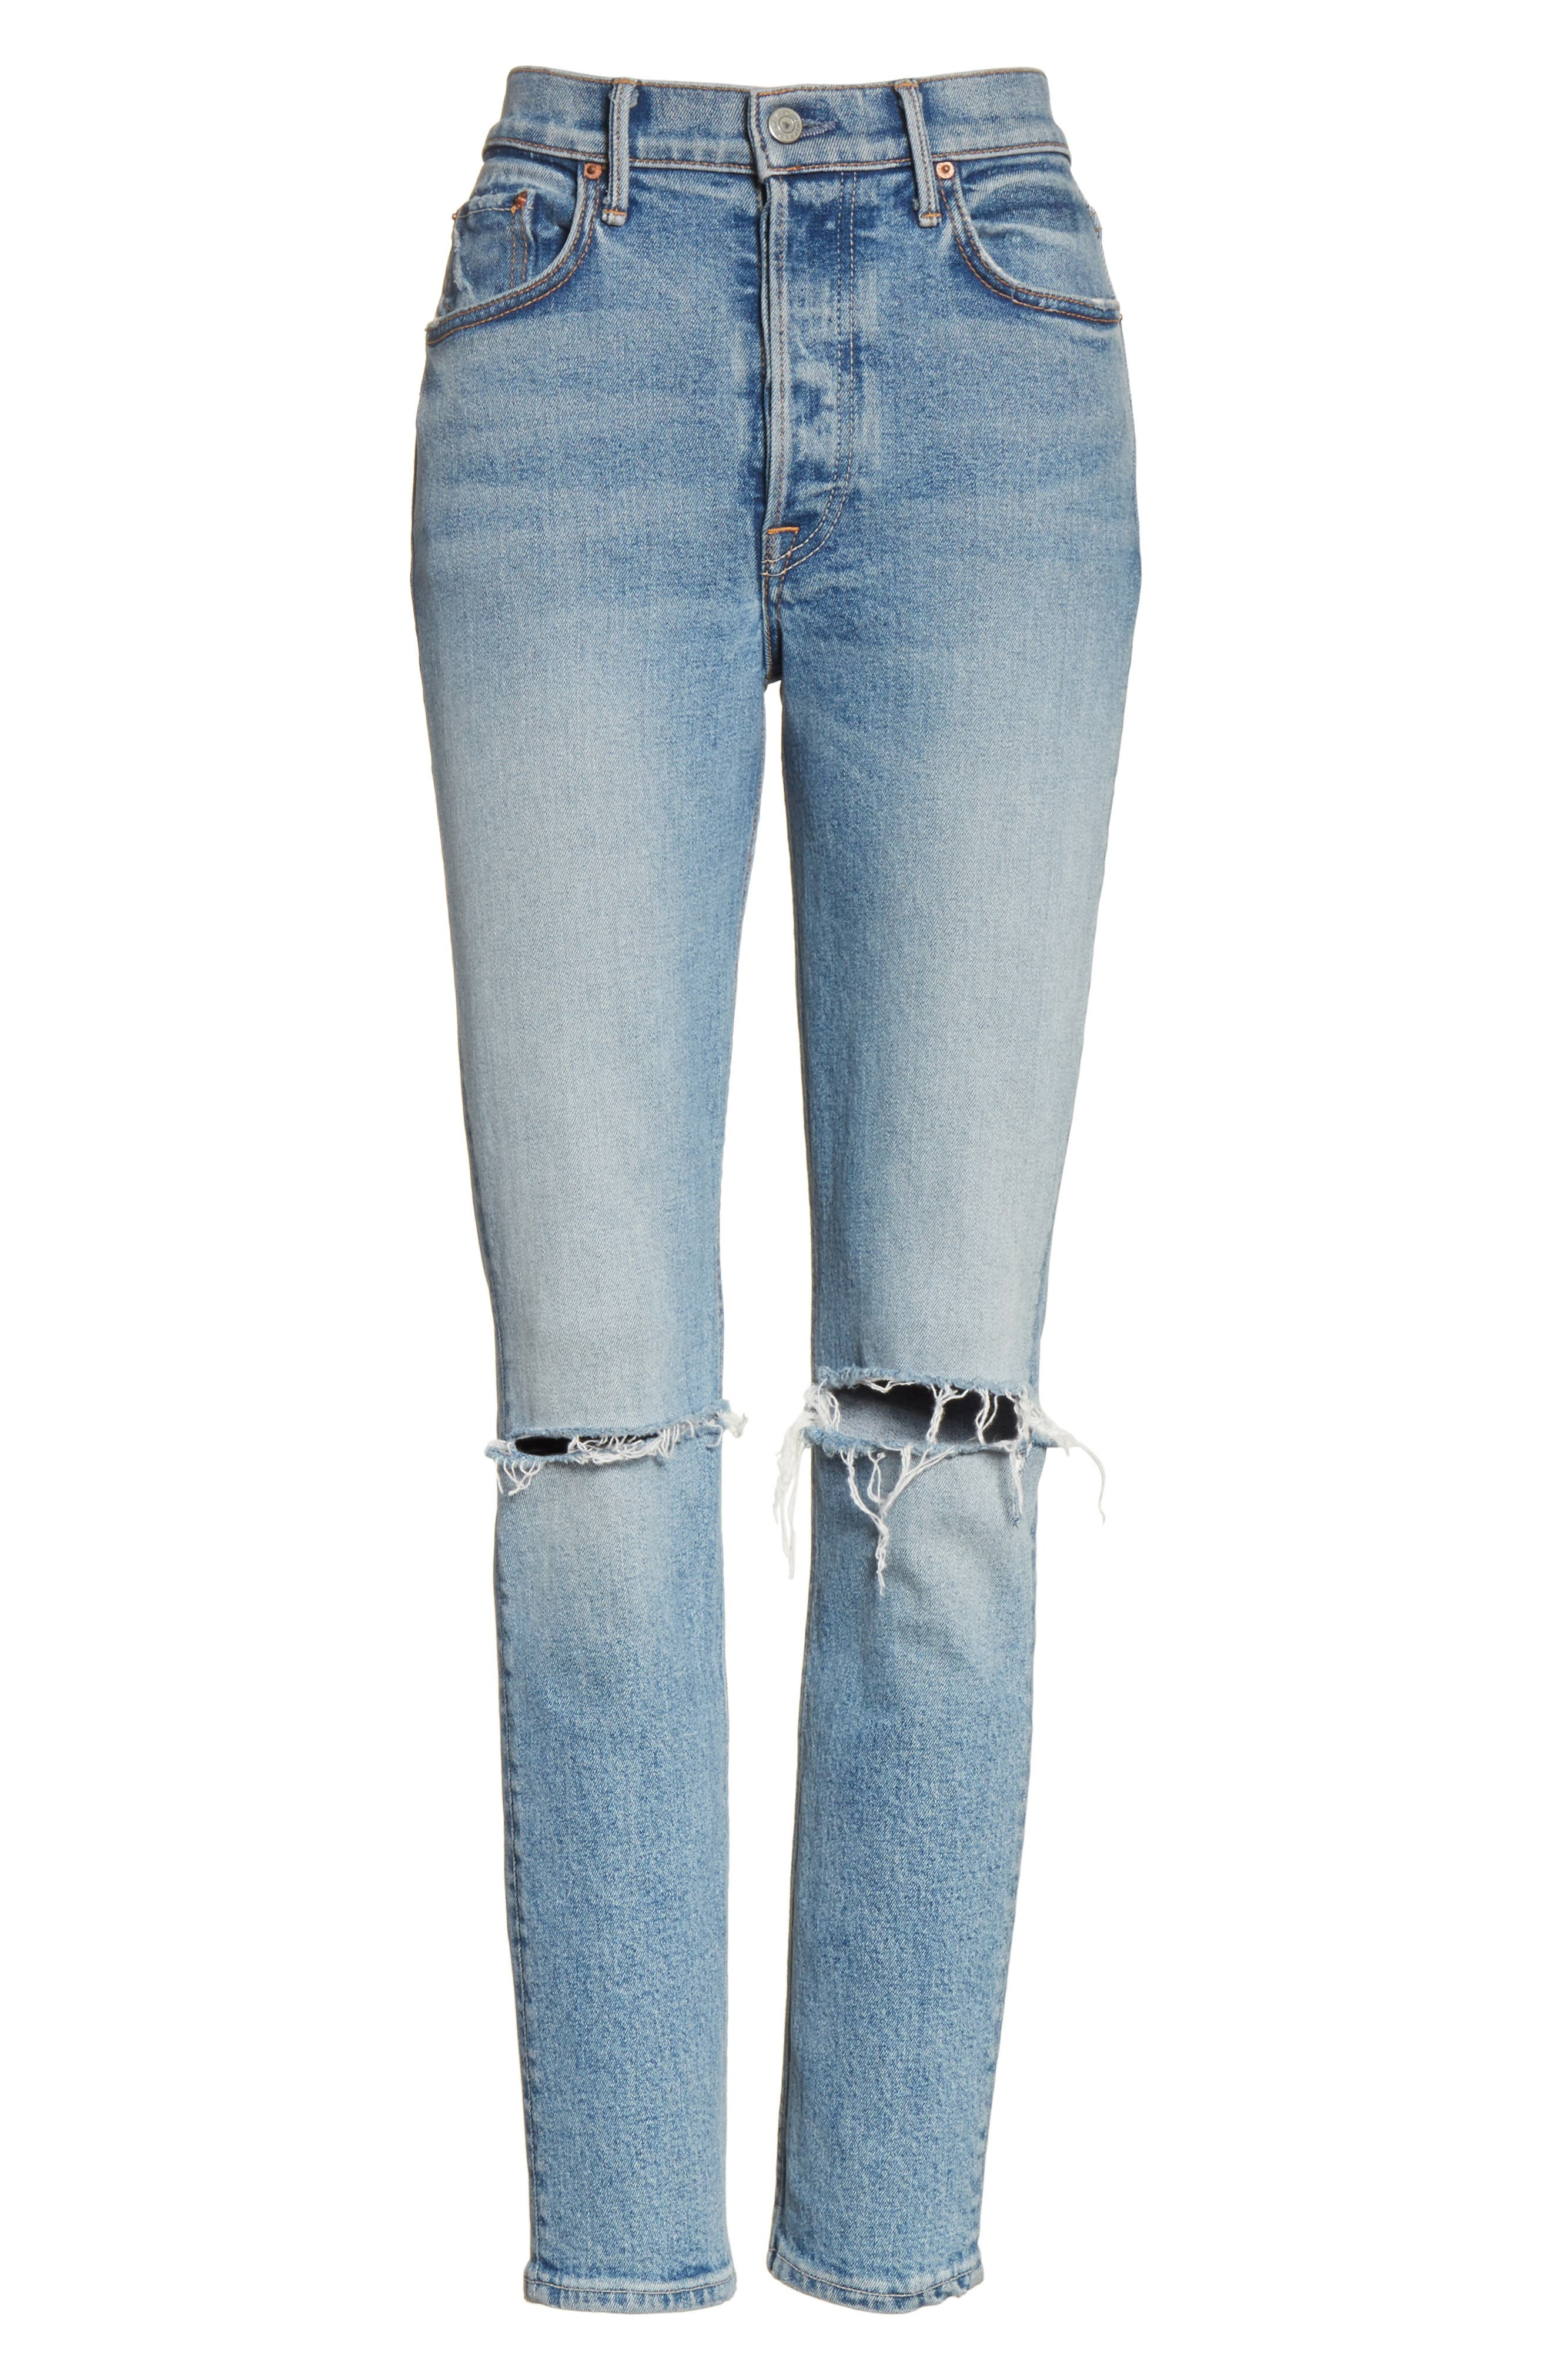 Karolina High Waist Jeans,                             Alternate thumbnail 6, color,                             What Is Life